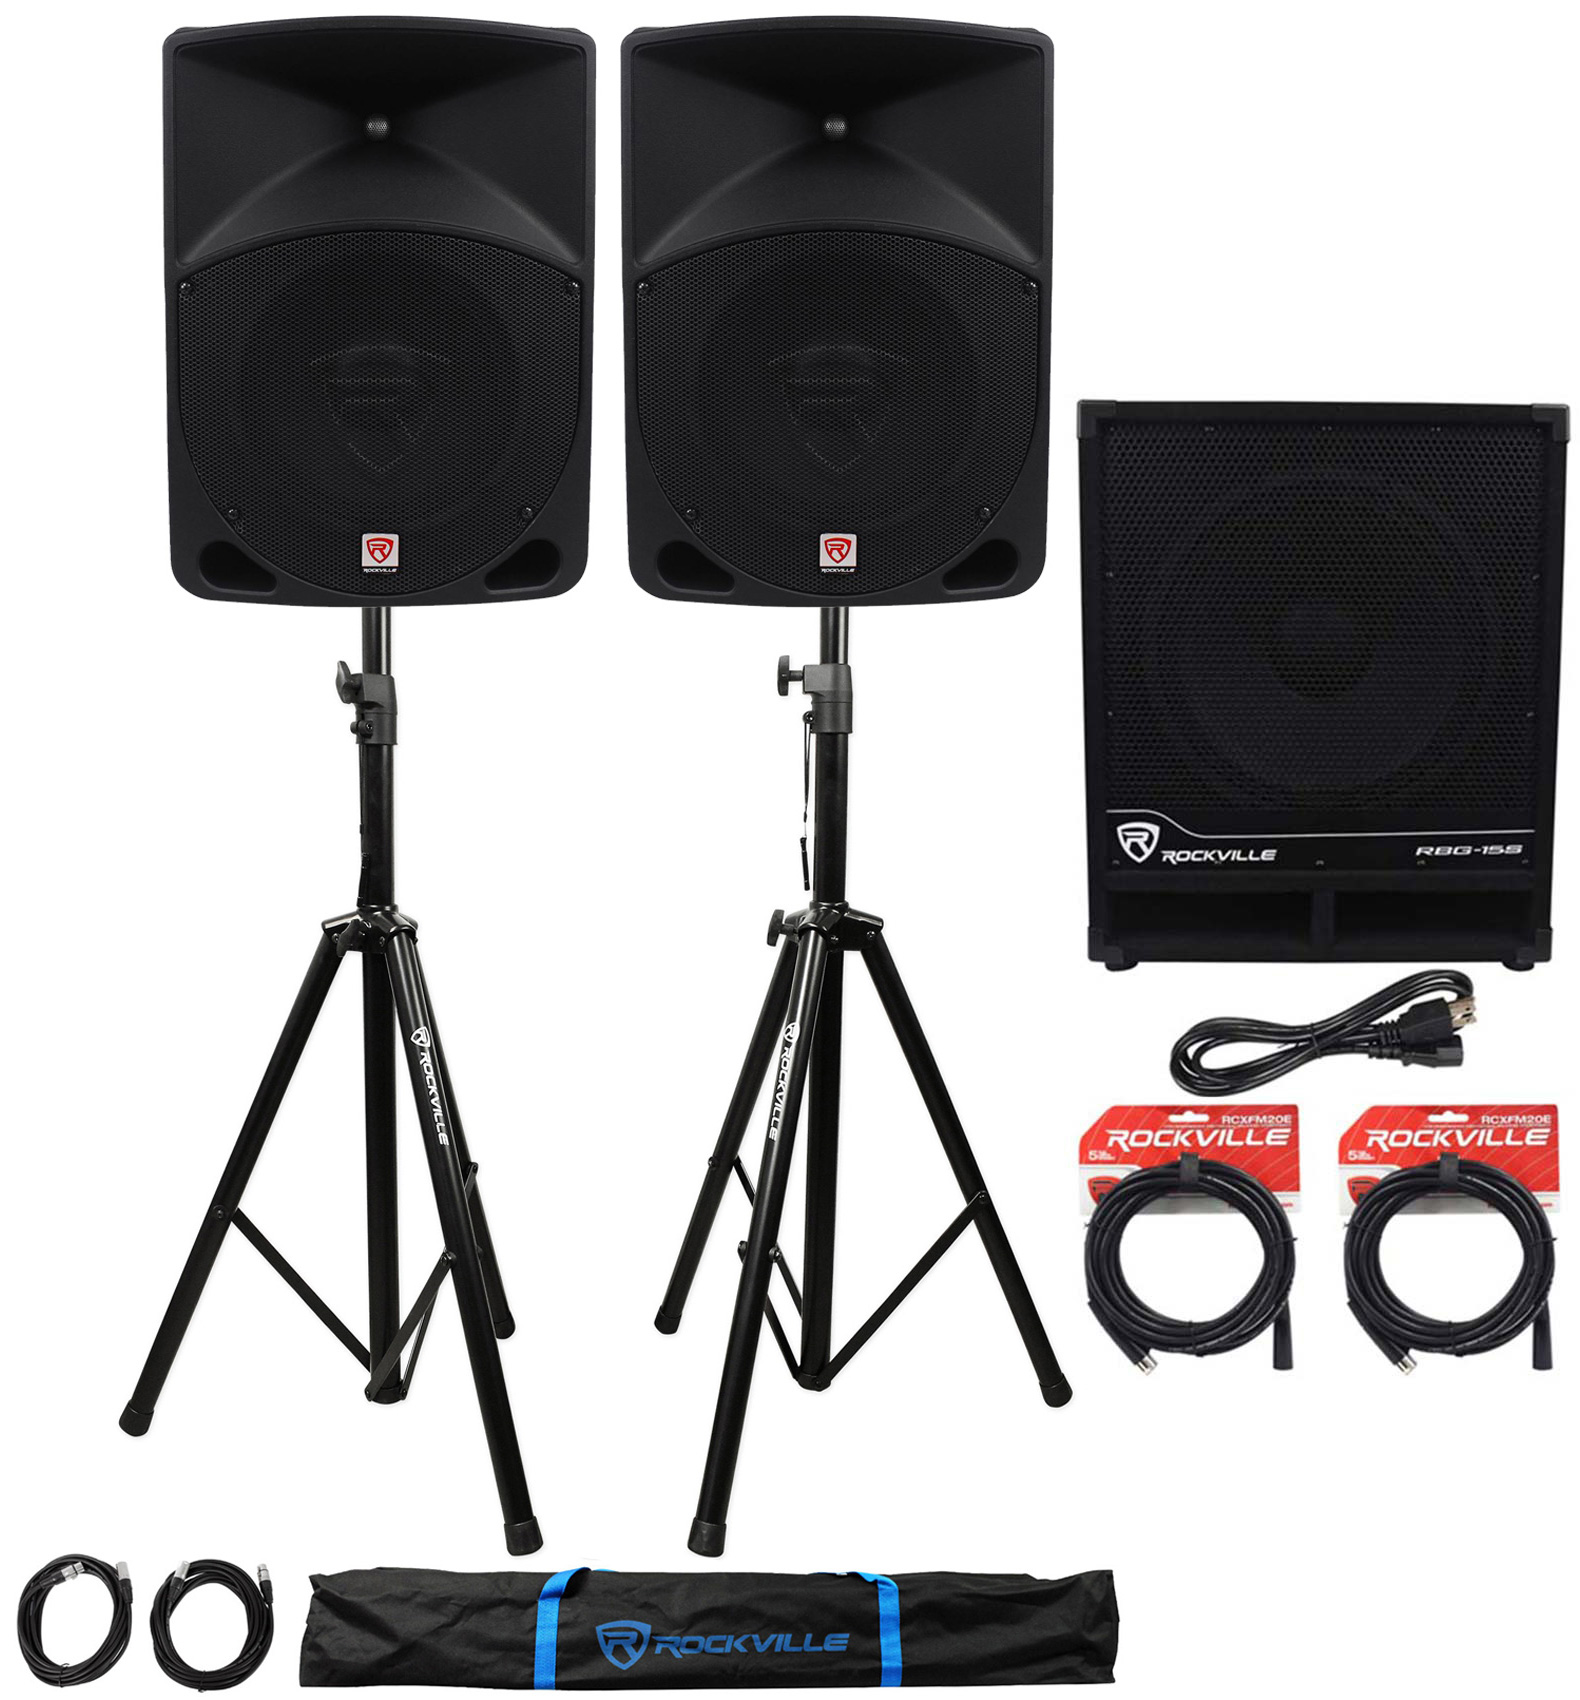 "(2) Rockville RPG10 10"" Powered PA Speakers+Active 15"" Subwoofer+Stands+Cables by ROCKVILLE"